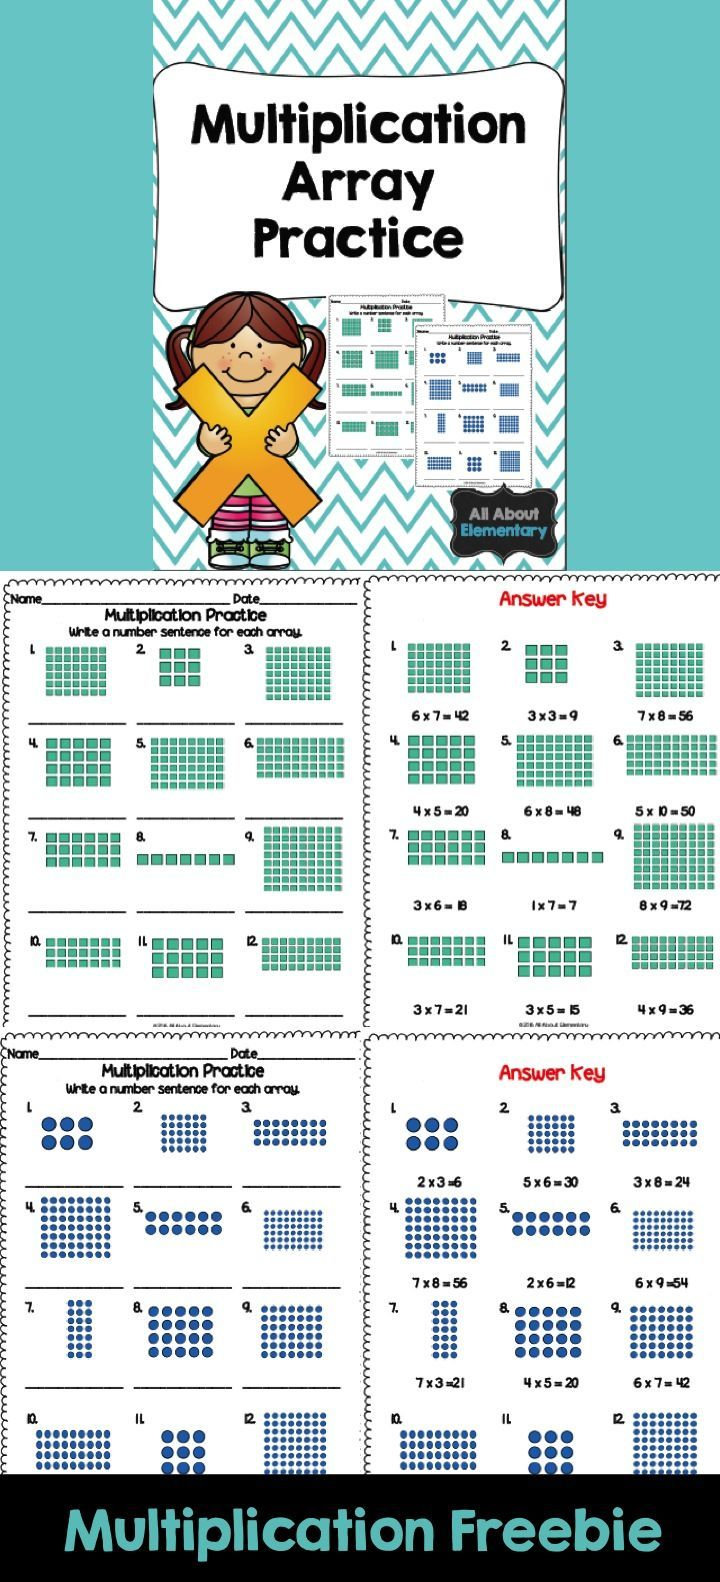 Multiplication Array Worksheets | Freebies for Teachers | Pinterest ...